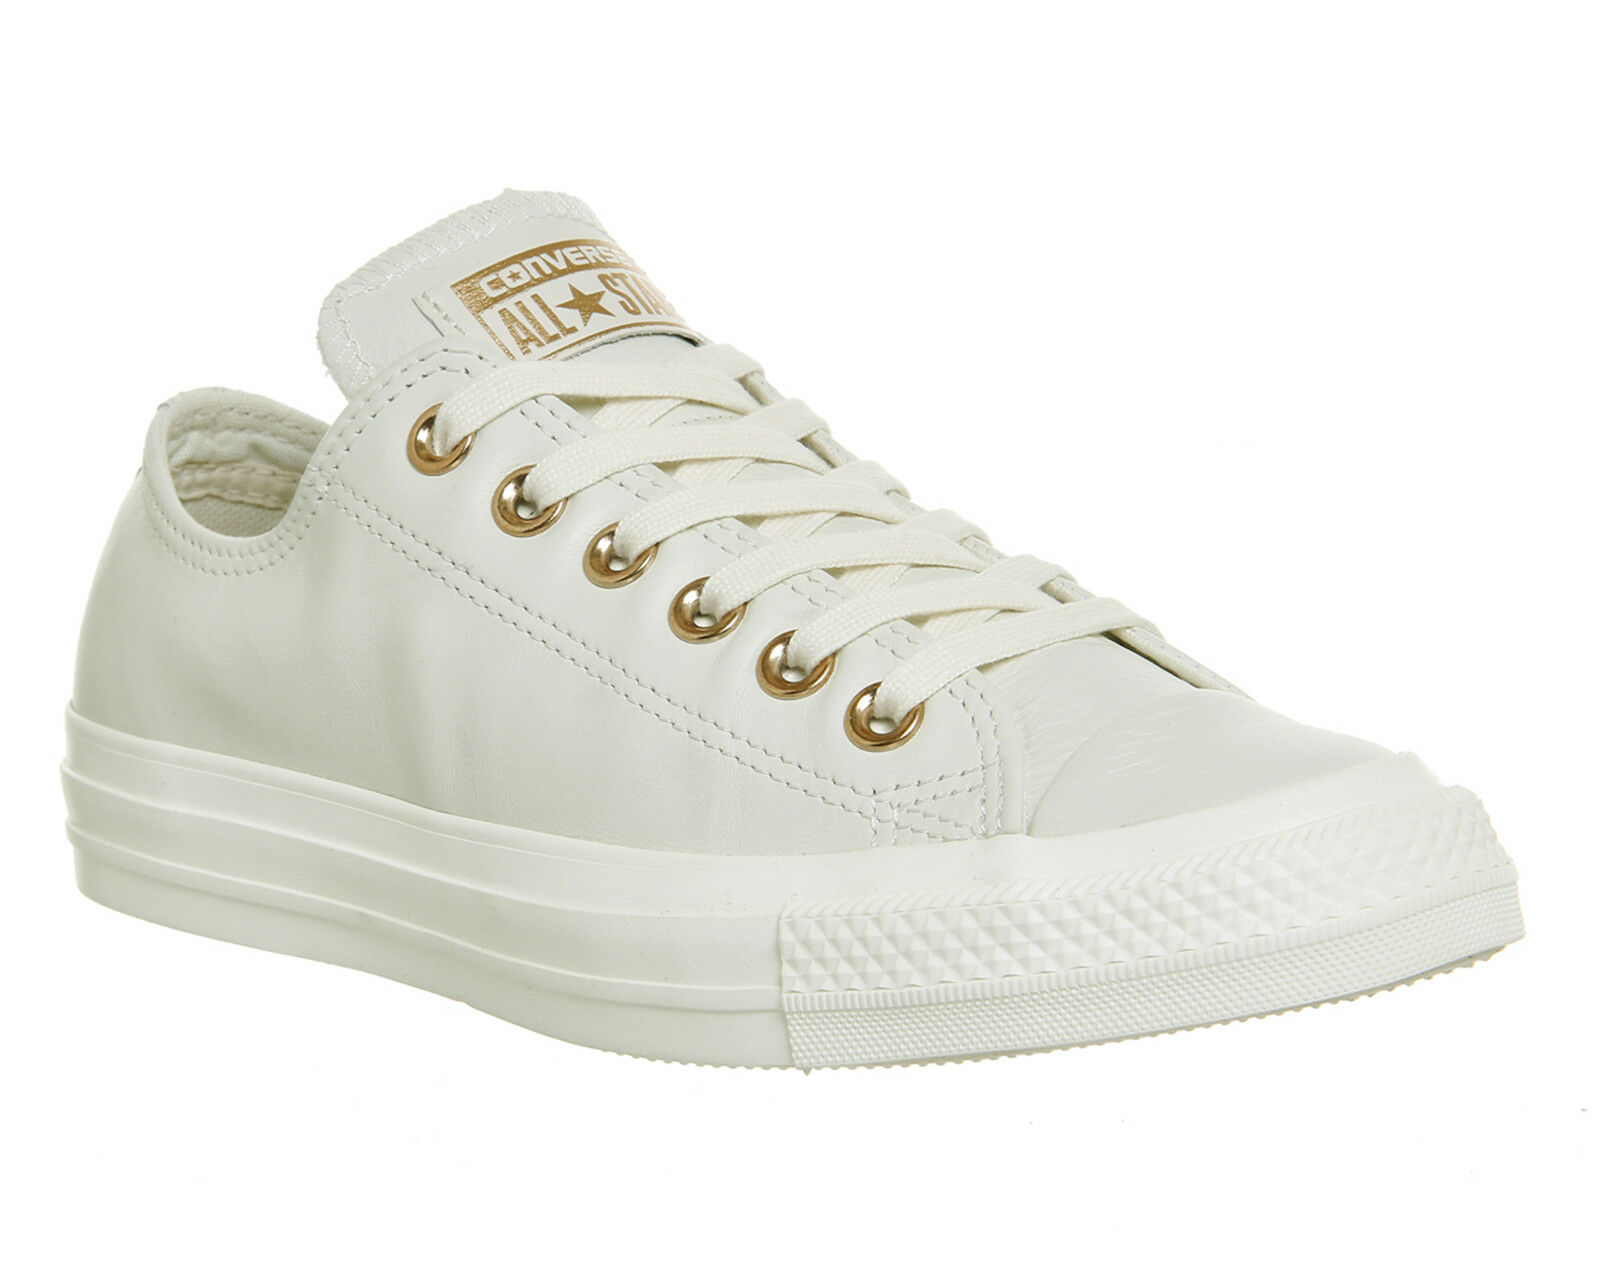 Womens Converse Bll Star Low Leather EGRET ROSE GOLD EXCLUSIVE Trainers Shoes